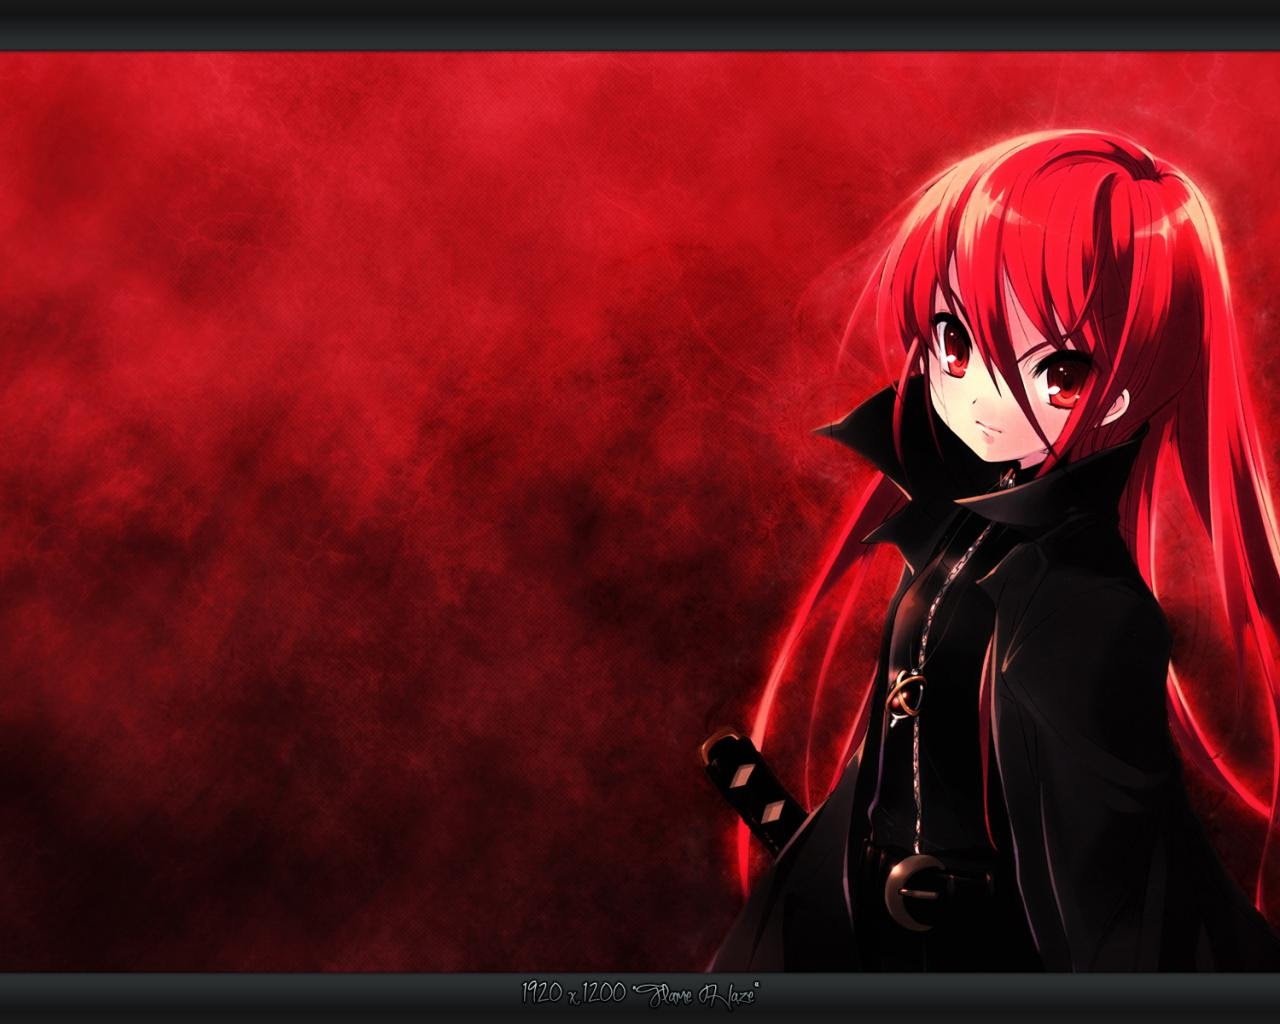 Hd Wallpaper Anime Red Wallpaper Lucu